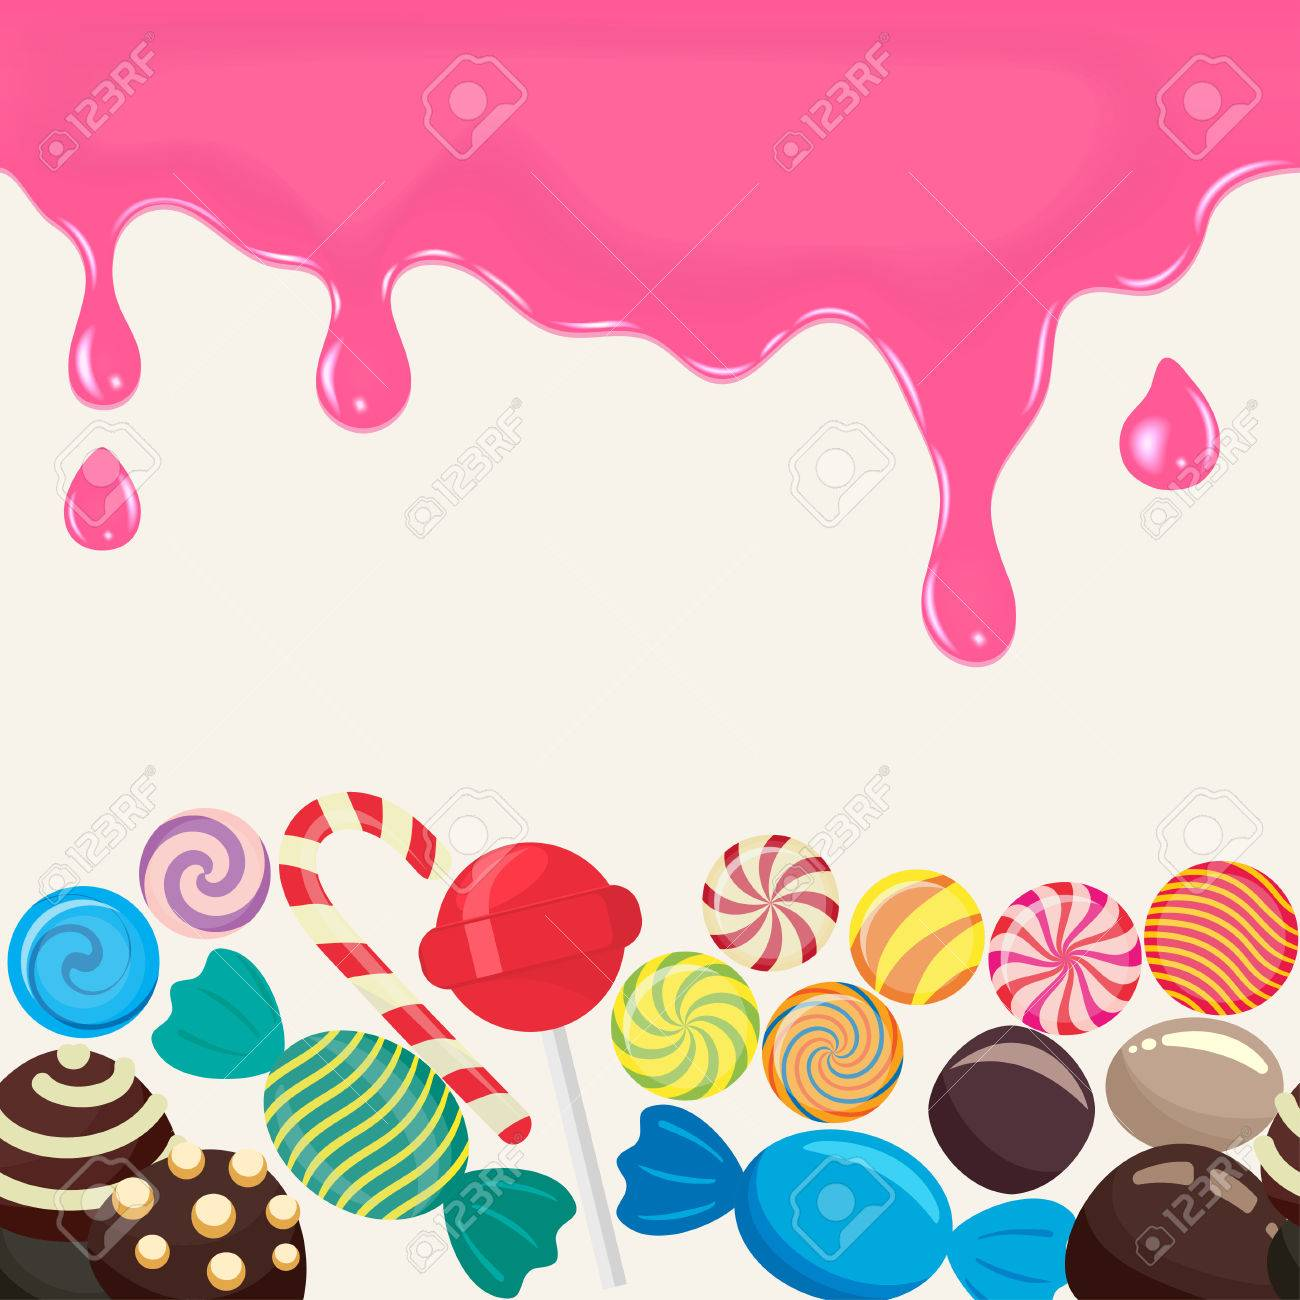 Sweet Candy Endless In The Horizontal Illustration For Menu Design Culinary Wallpaper Caramel Lollipop